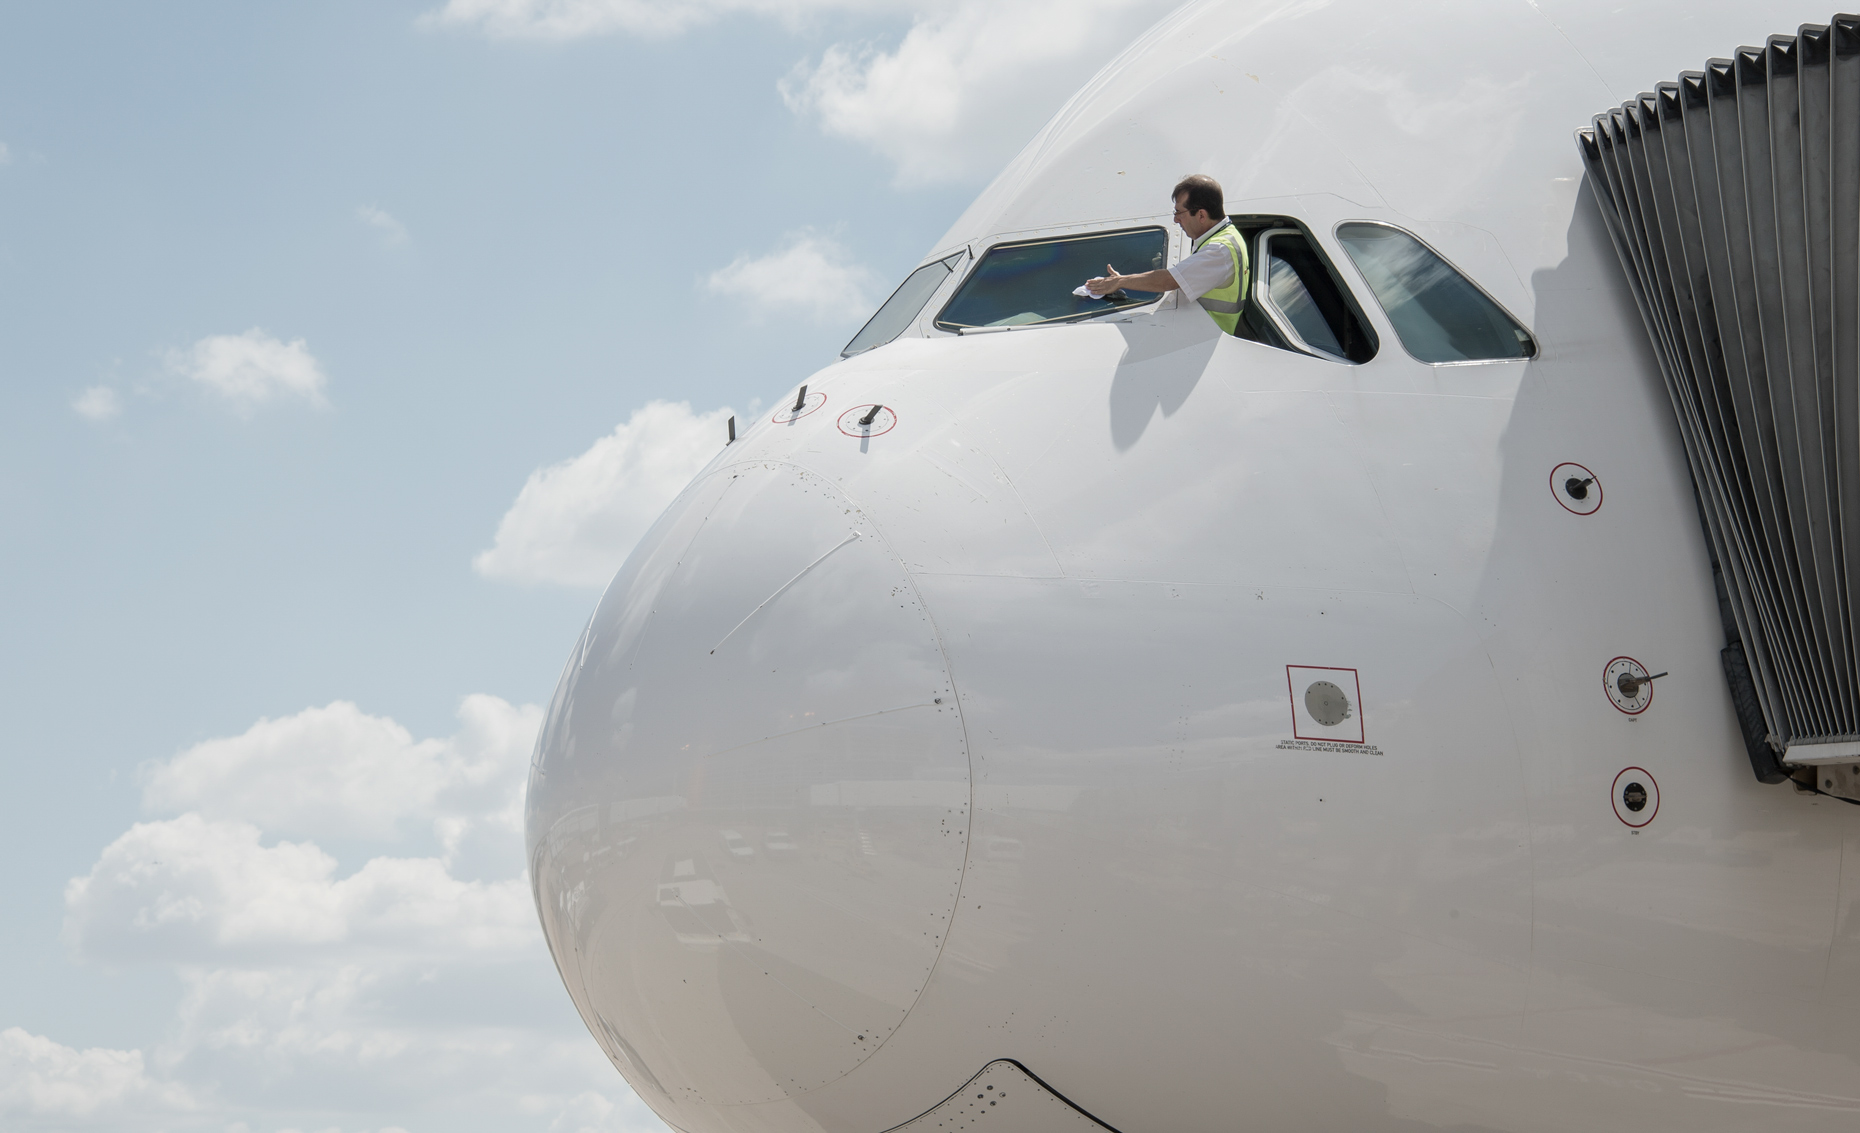 Pilot cleans his windshield at DFW Airport by commercial photographer in Dallas Kevin Brown